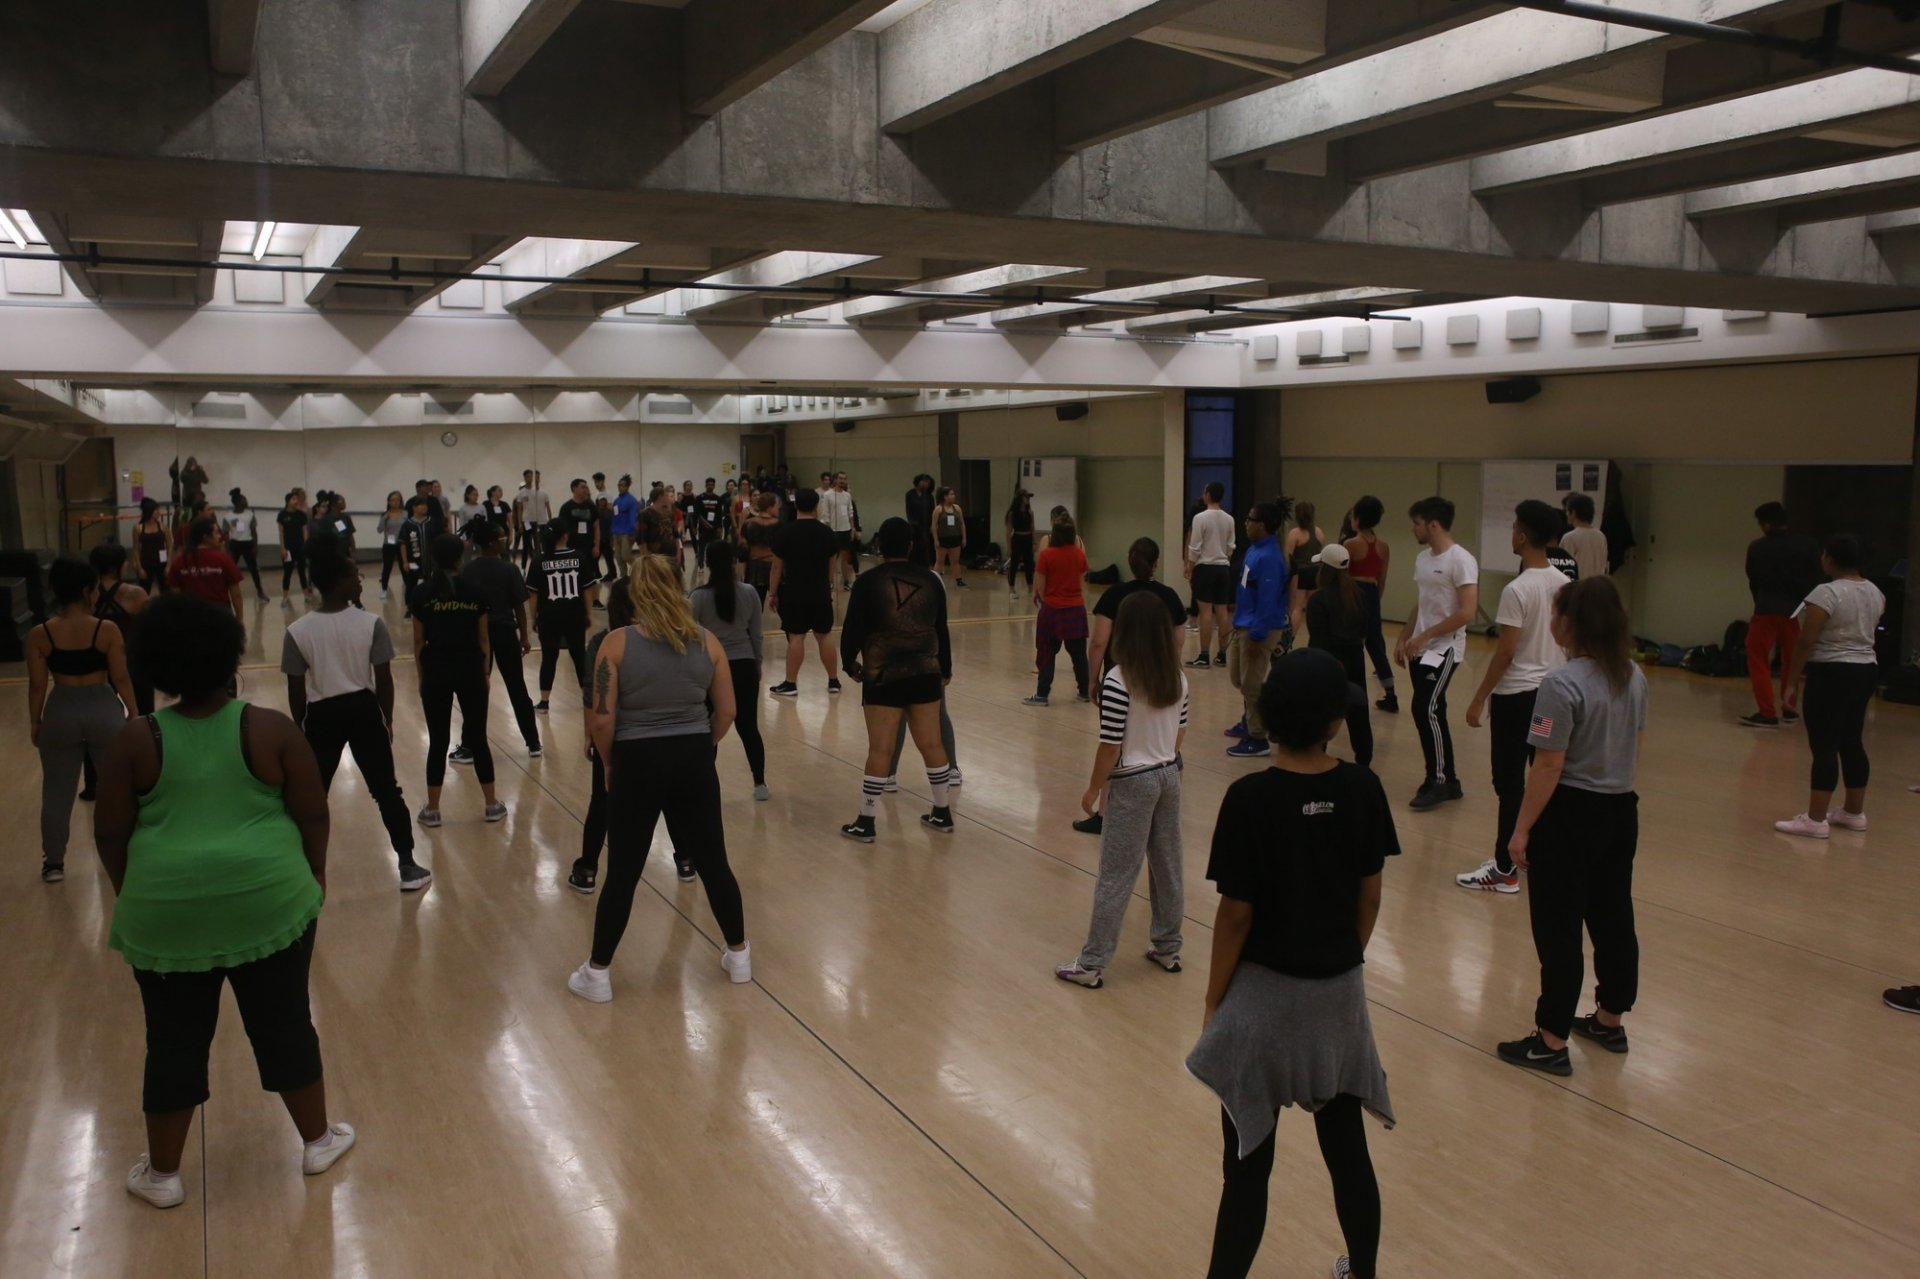 Members of Demolishion showing the people auditioning their dance on September 18th 2017. Photo credit: Juan Herrera